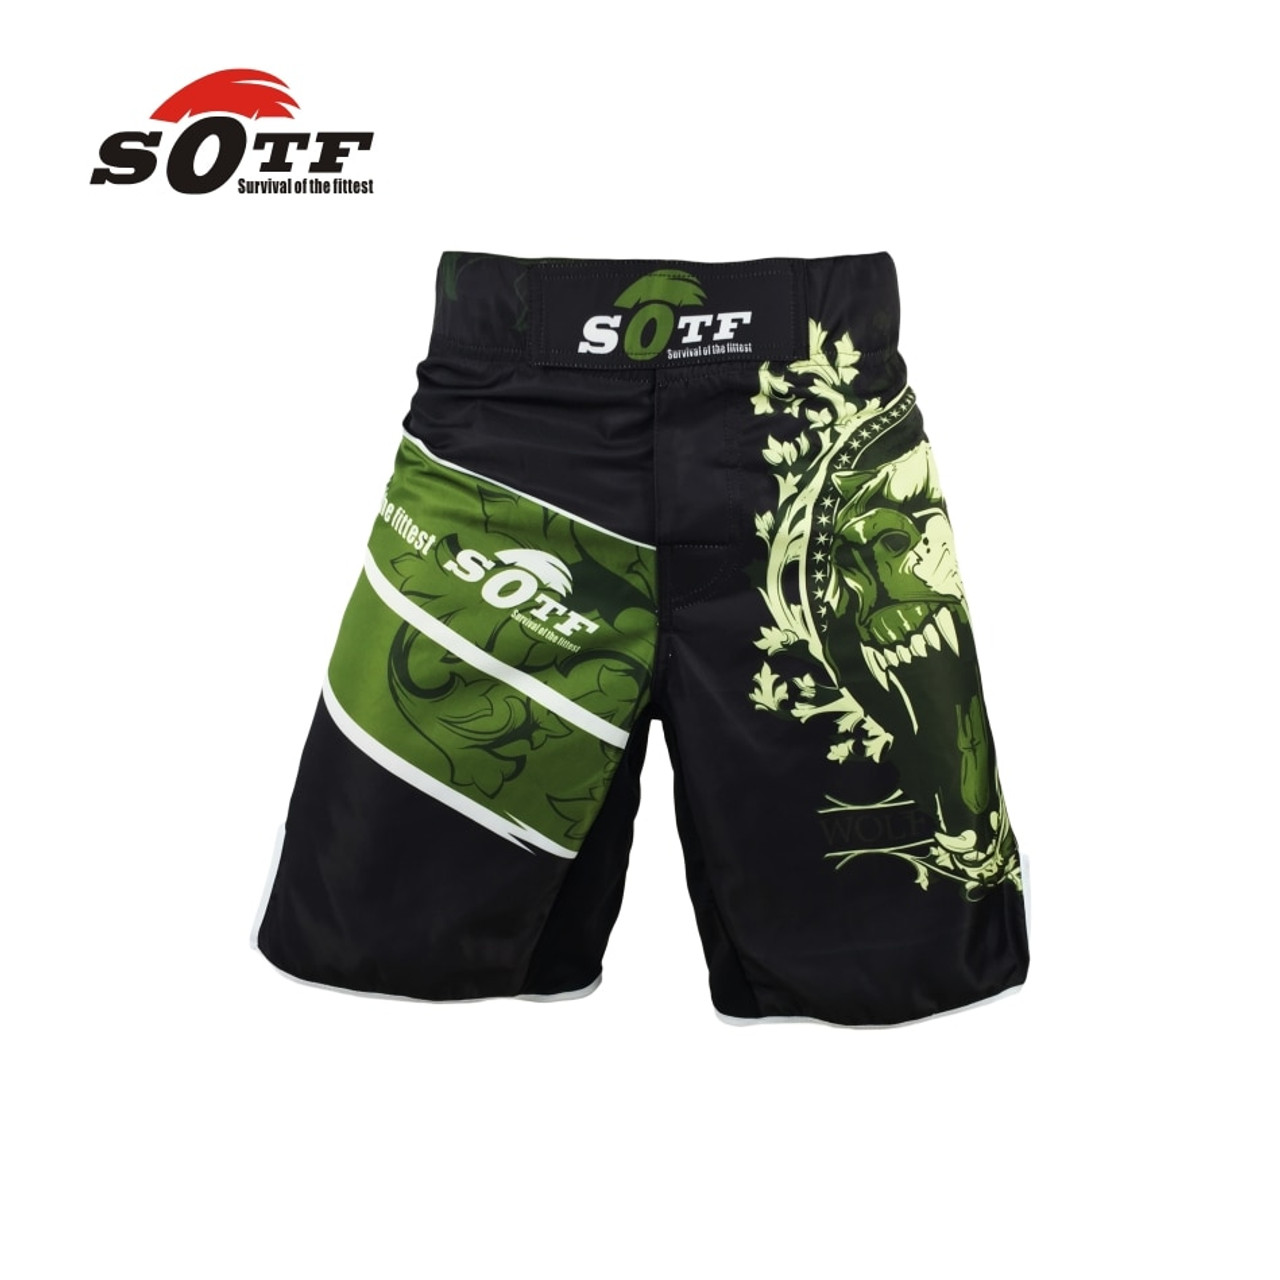 NEON GREEN /'LOVE BOXING/' SHORTS TRUNKS FOR THAIBOXING KICKBOXING TRAINING